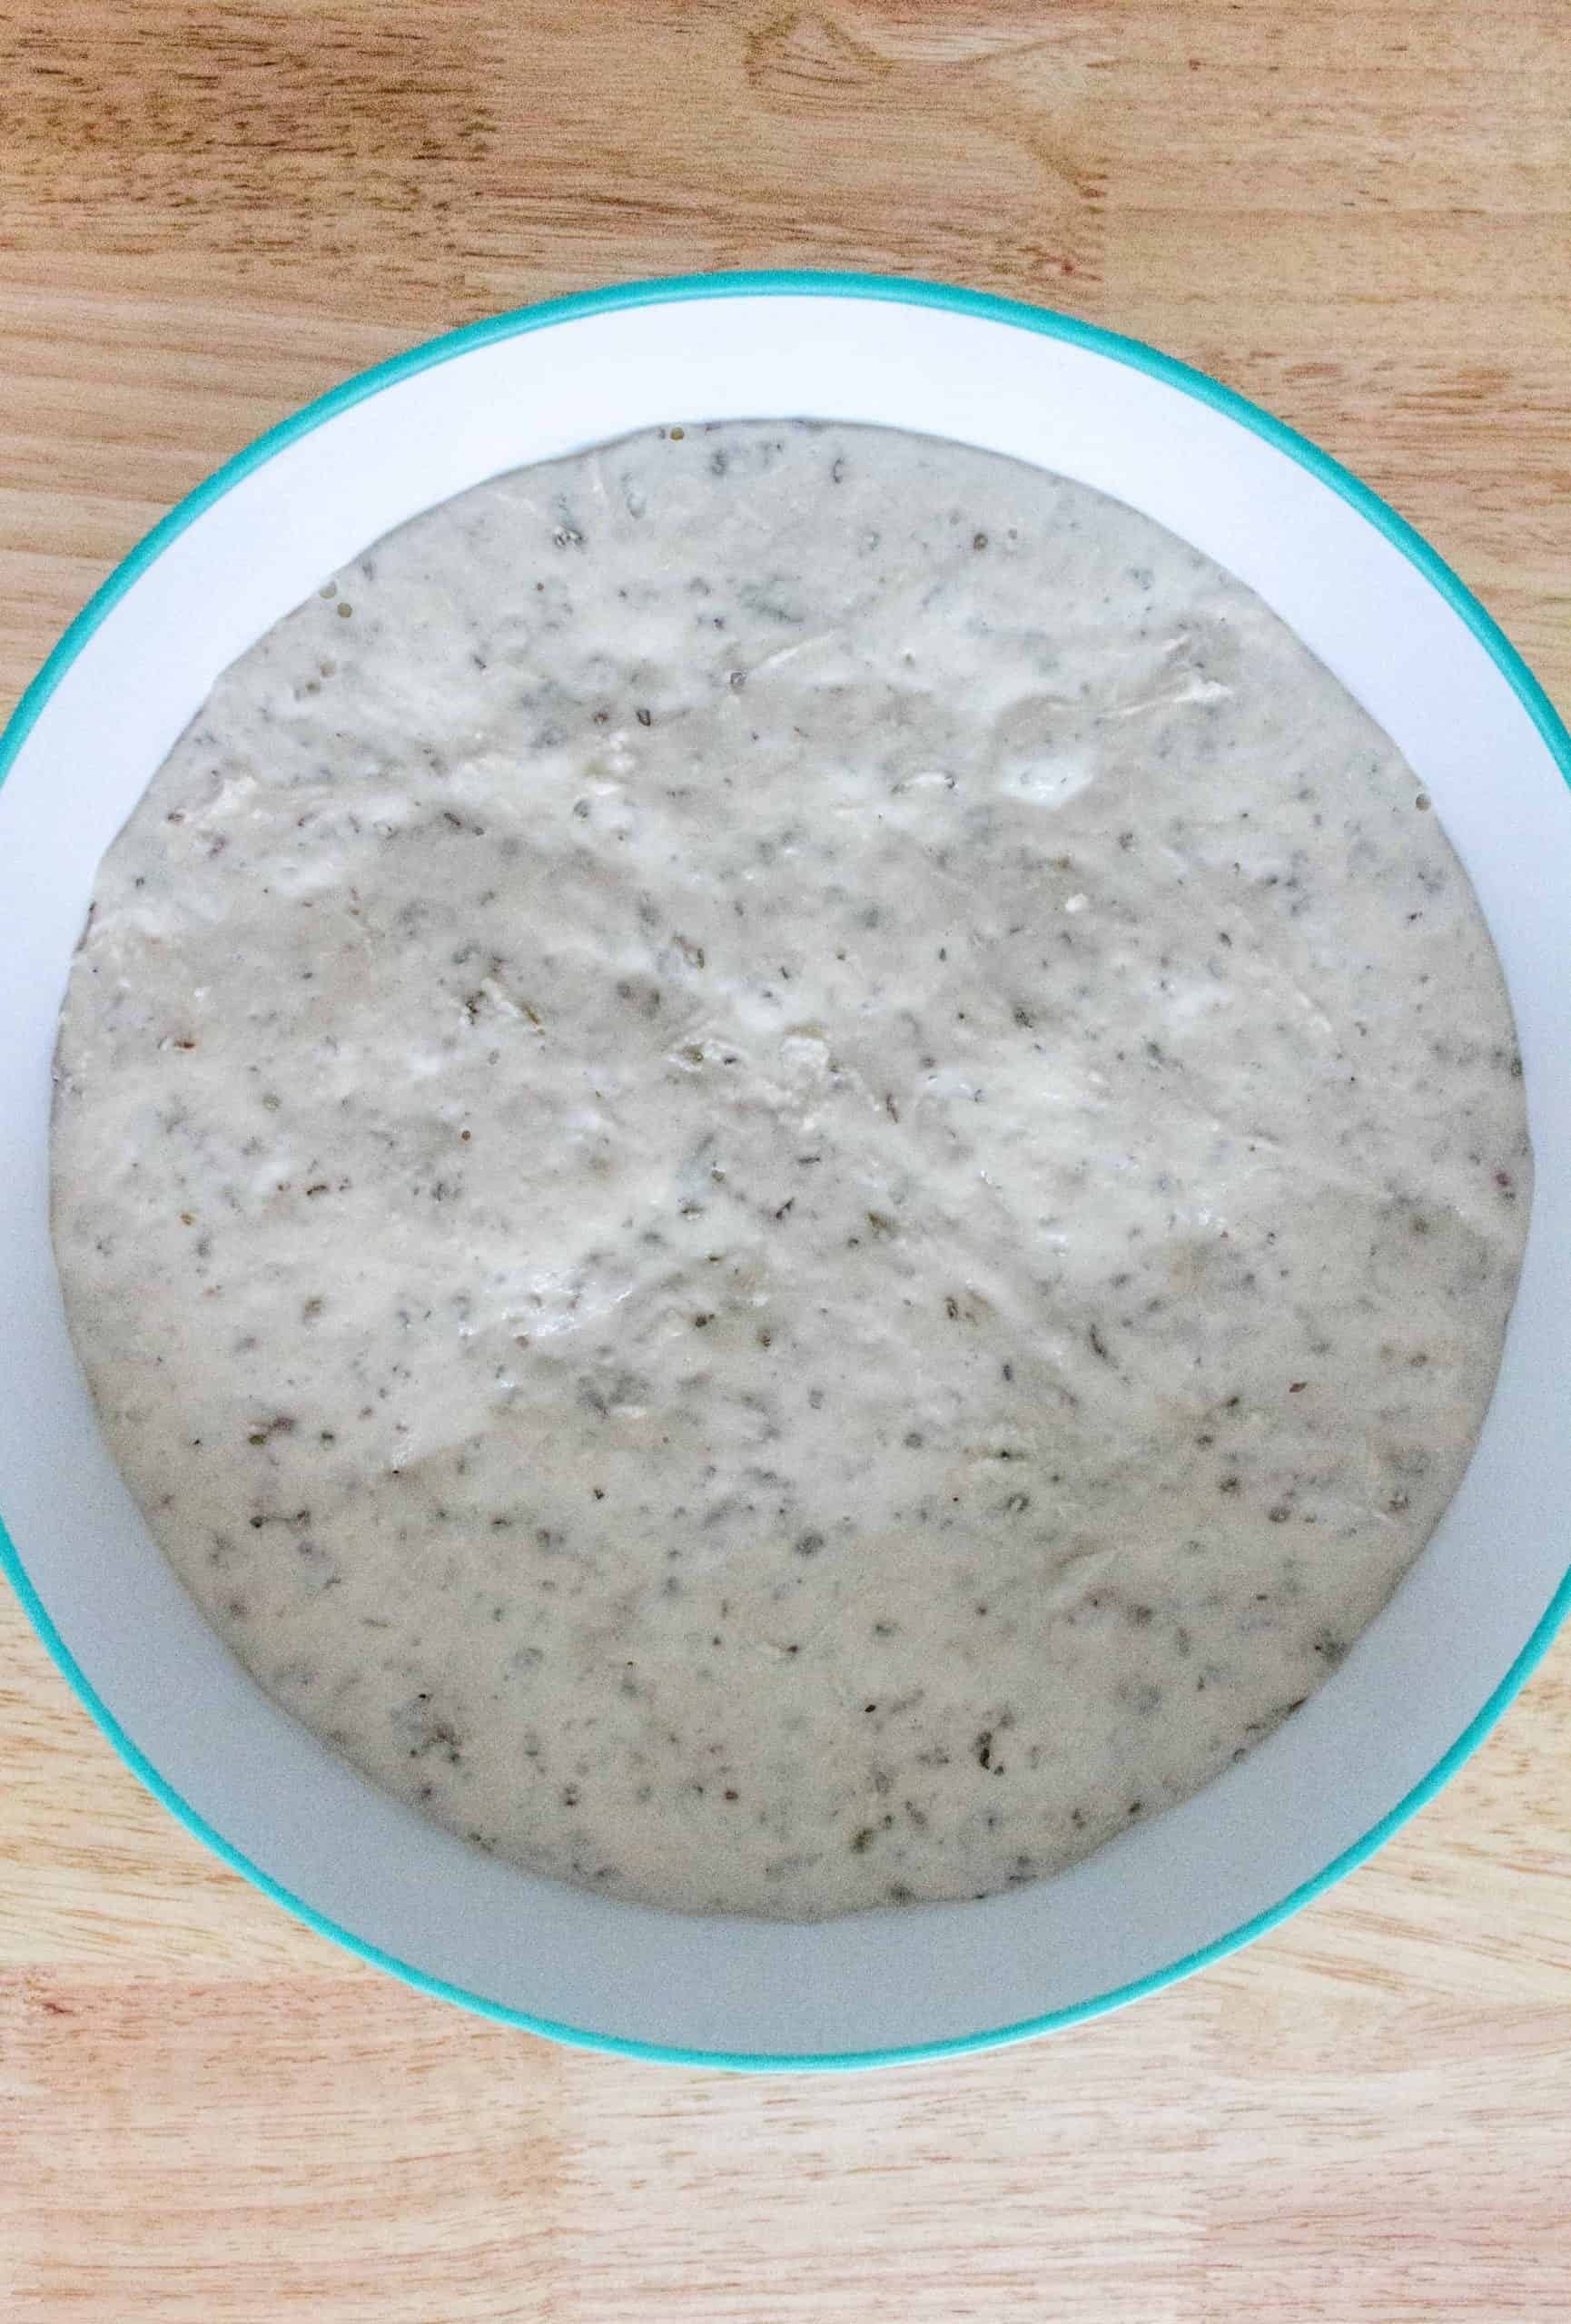 Cover the same bowl with plastic wrap, and let the dough rest in a warm spot in your kitchen for 12 to 20 hours, until the surface is dotted with bubbles and have doubled in size.